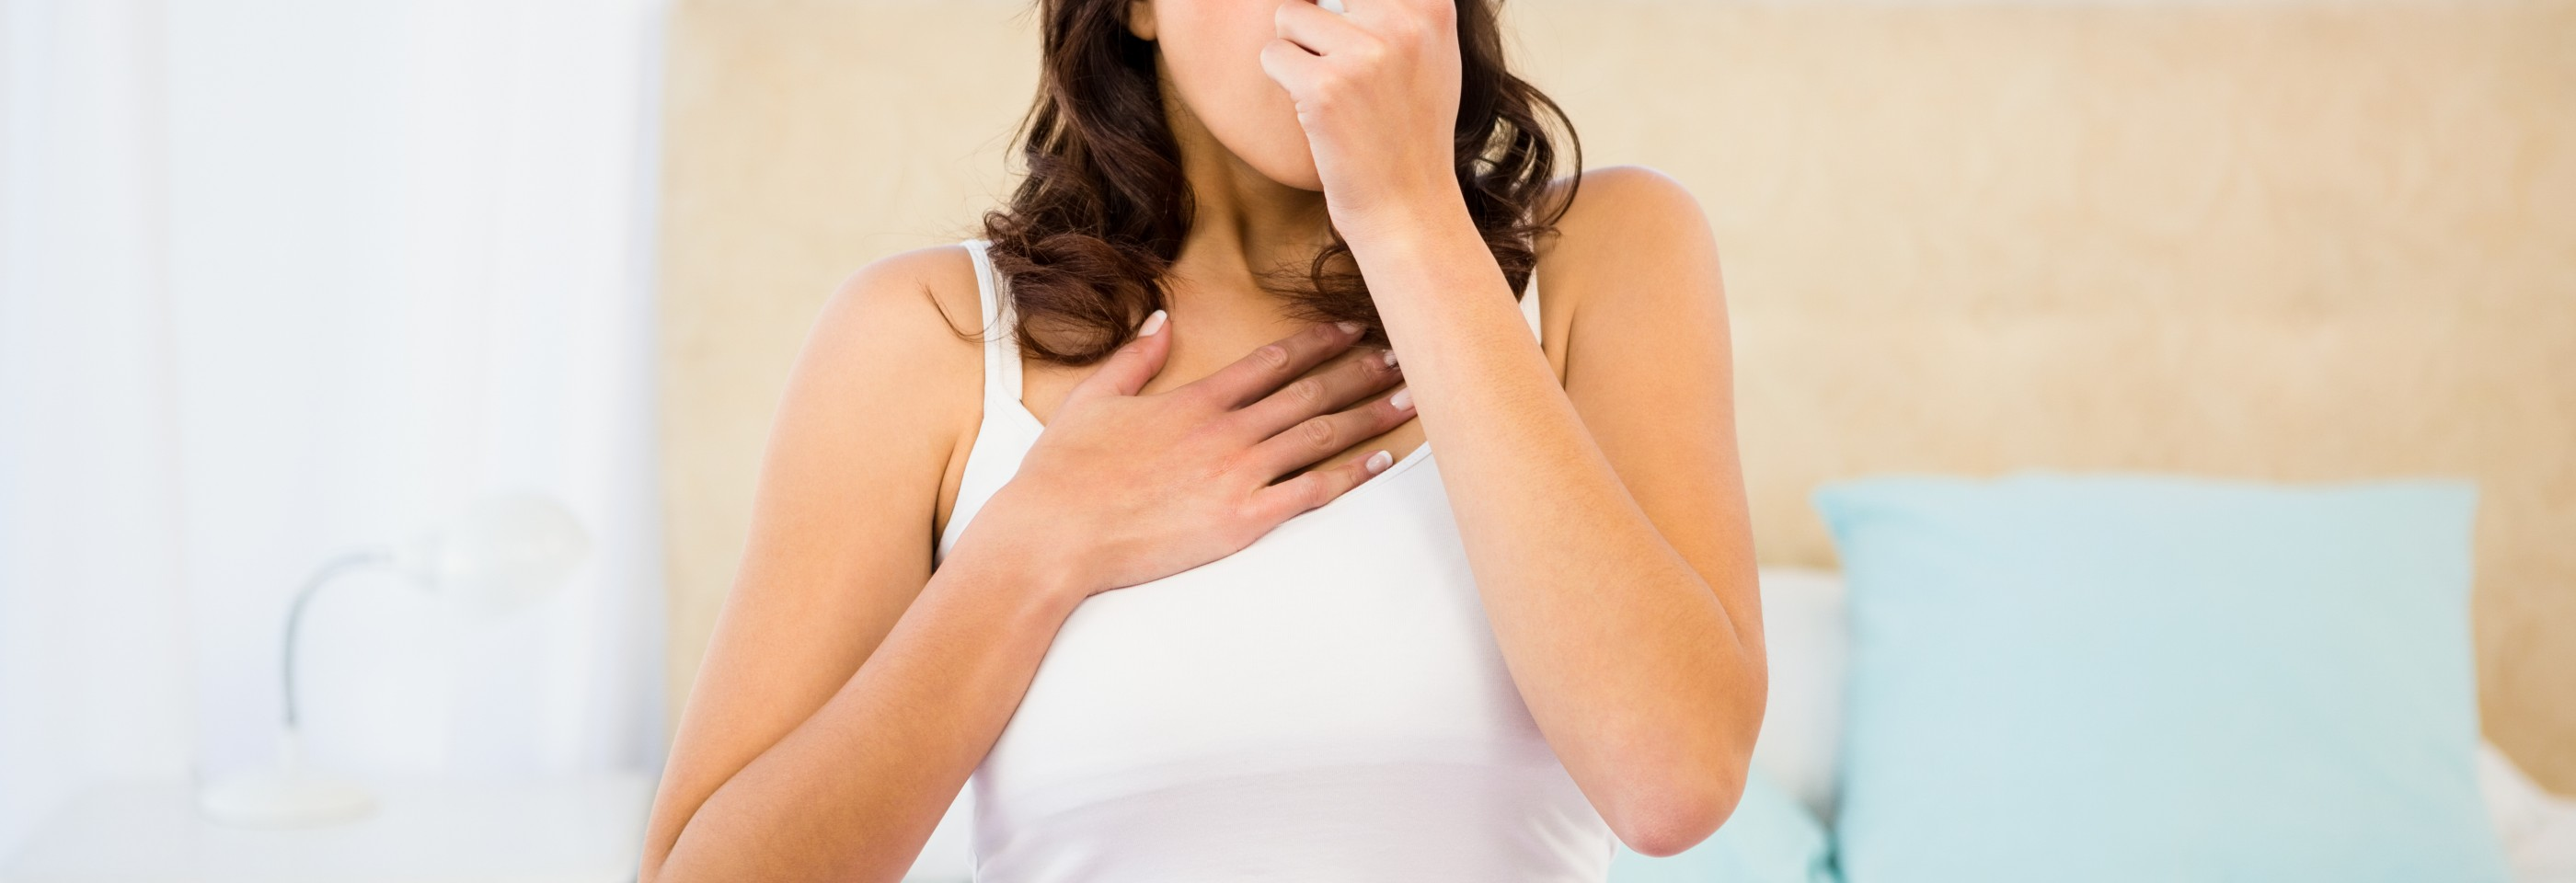 Trelegy Ellipta Reduces Copd Exacerbations And Improves Lung Function